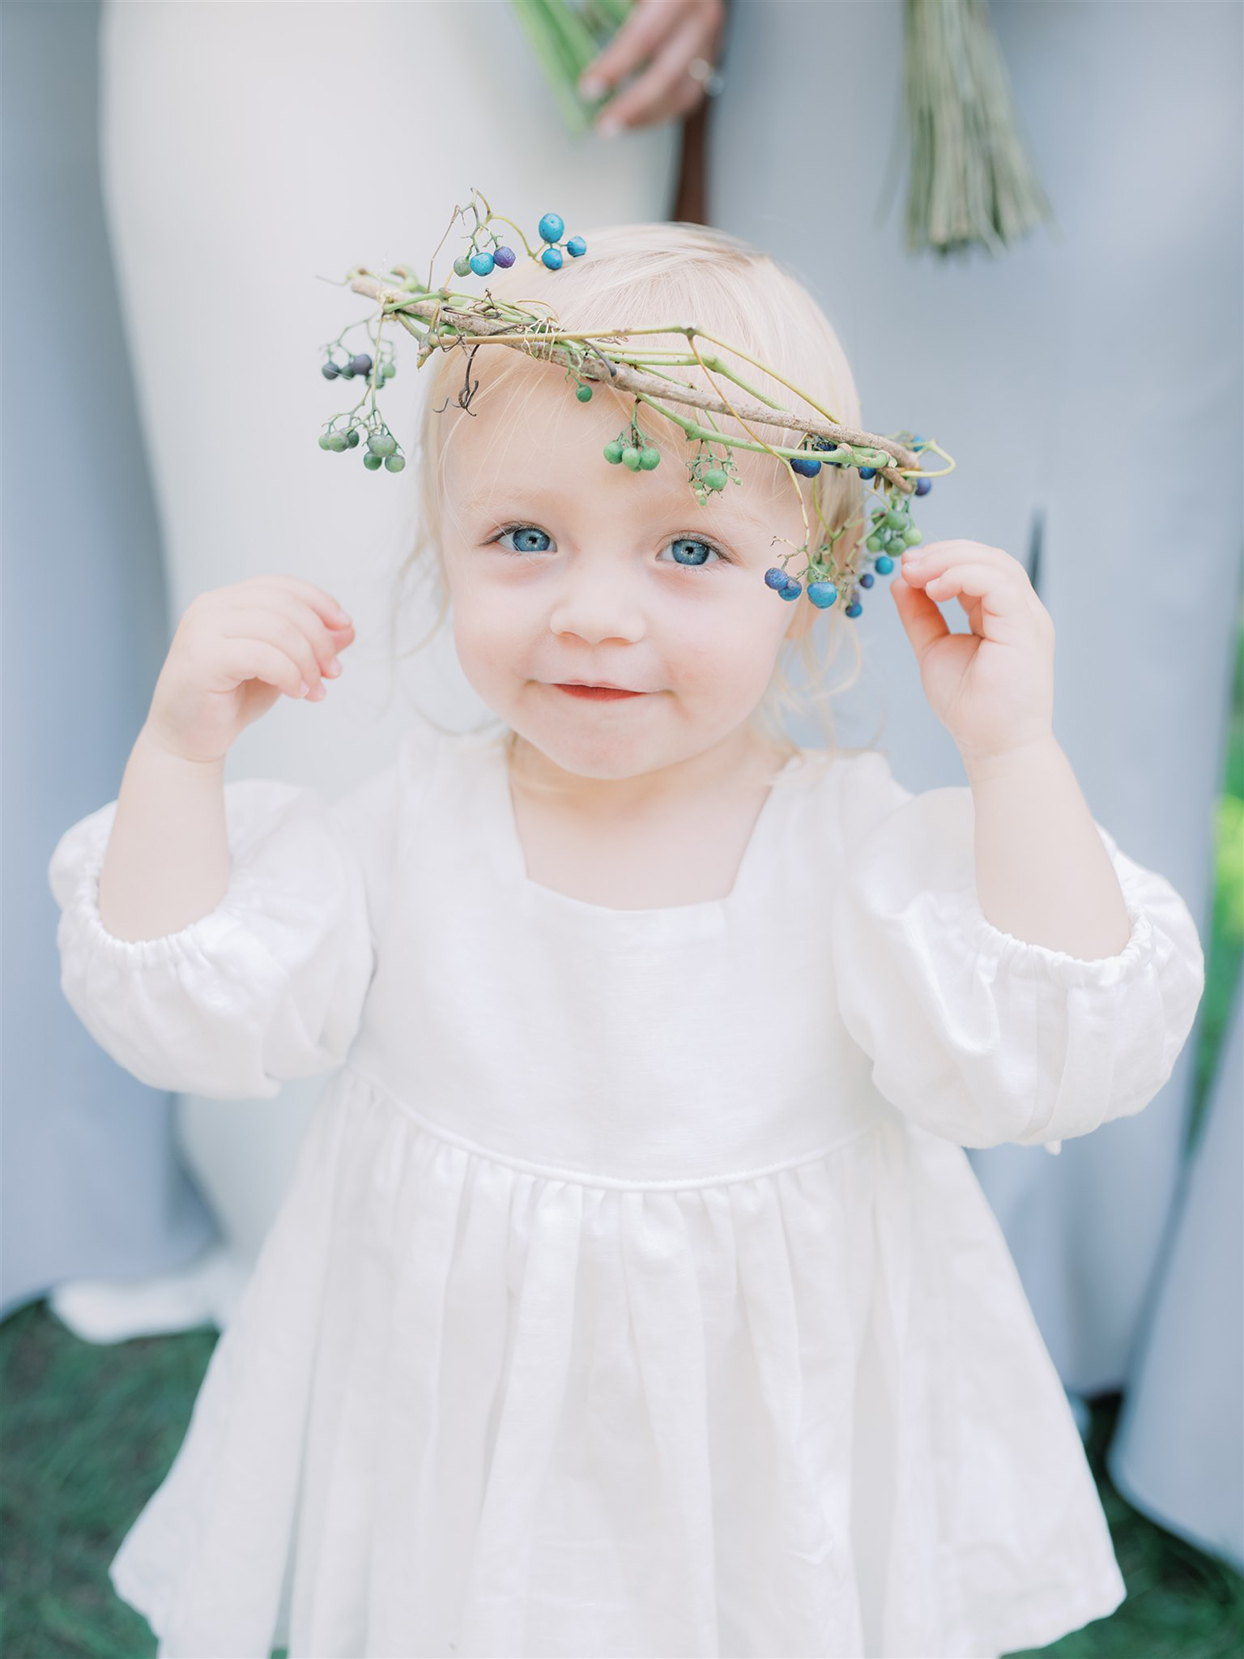 samantha cody wedding flower girl in white with berry wreath on head